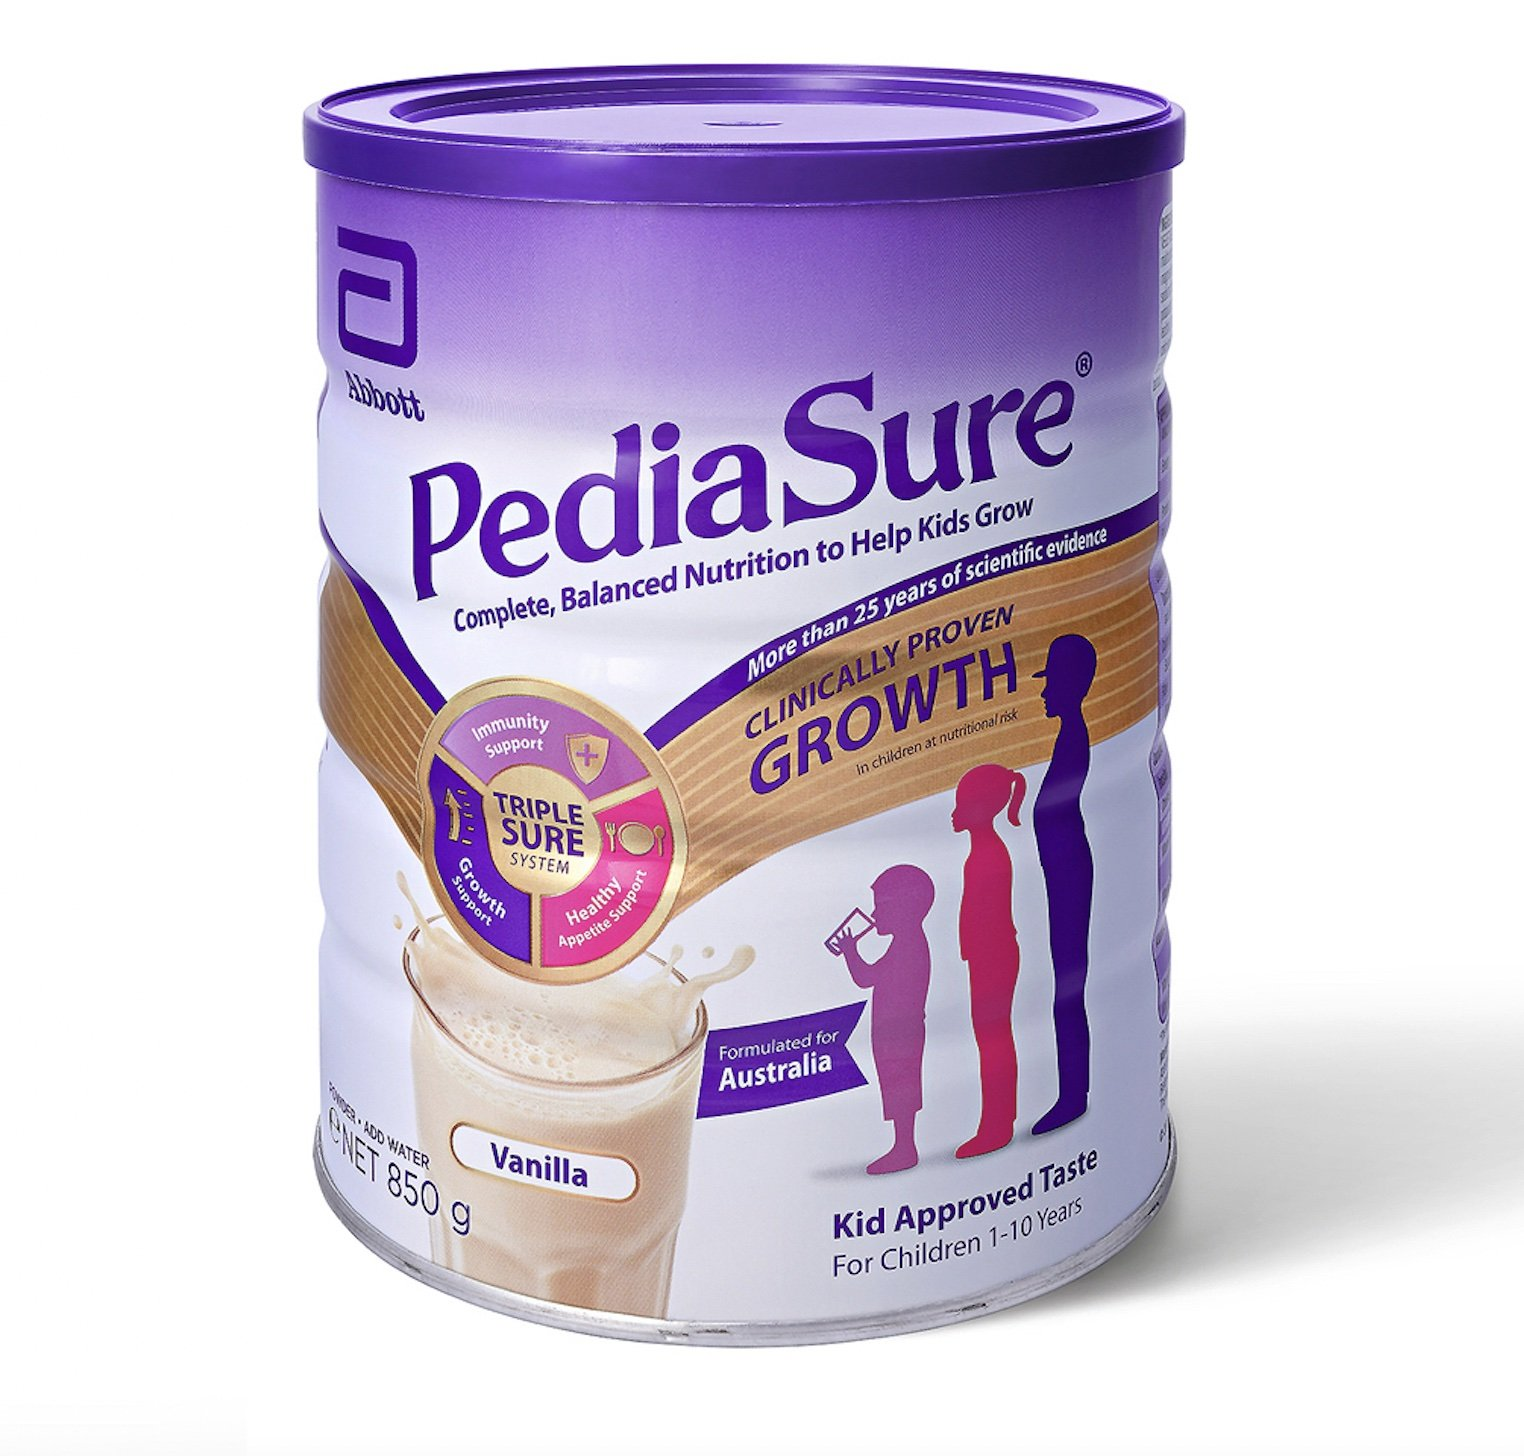 PEDIASURE POWDER VANILLA 850G EACH